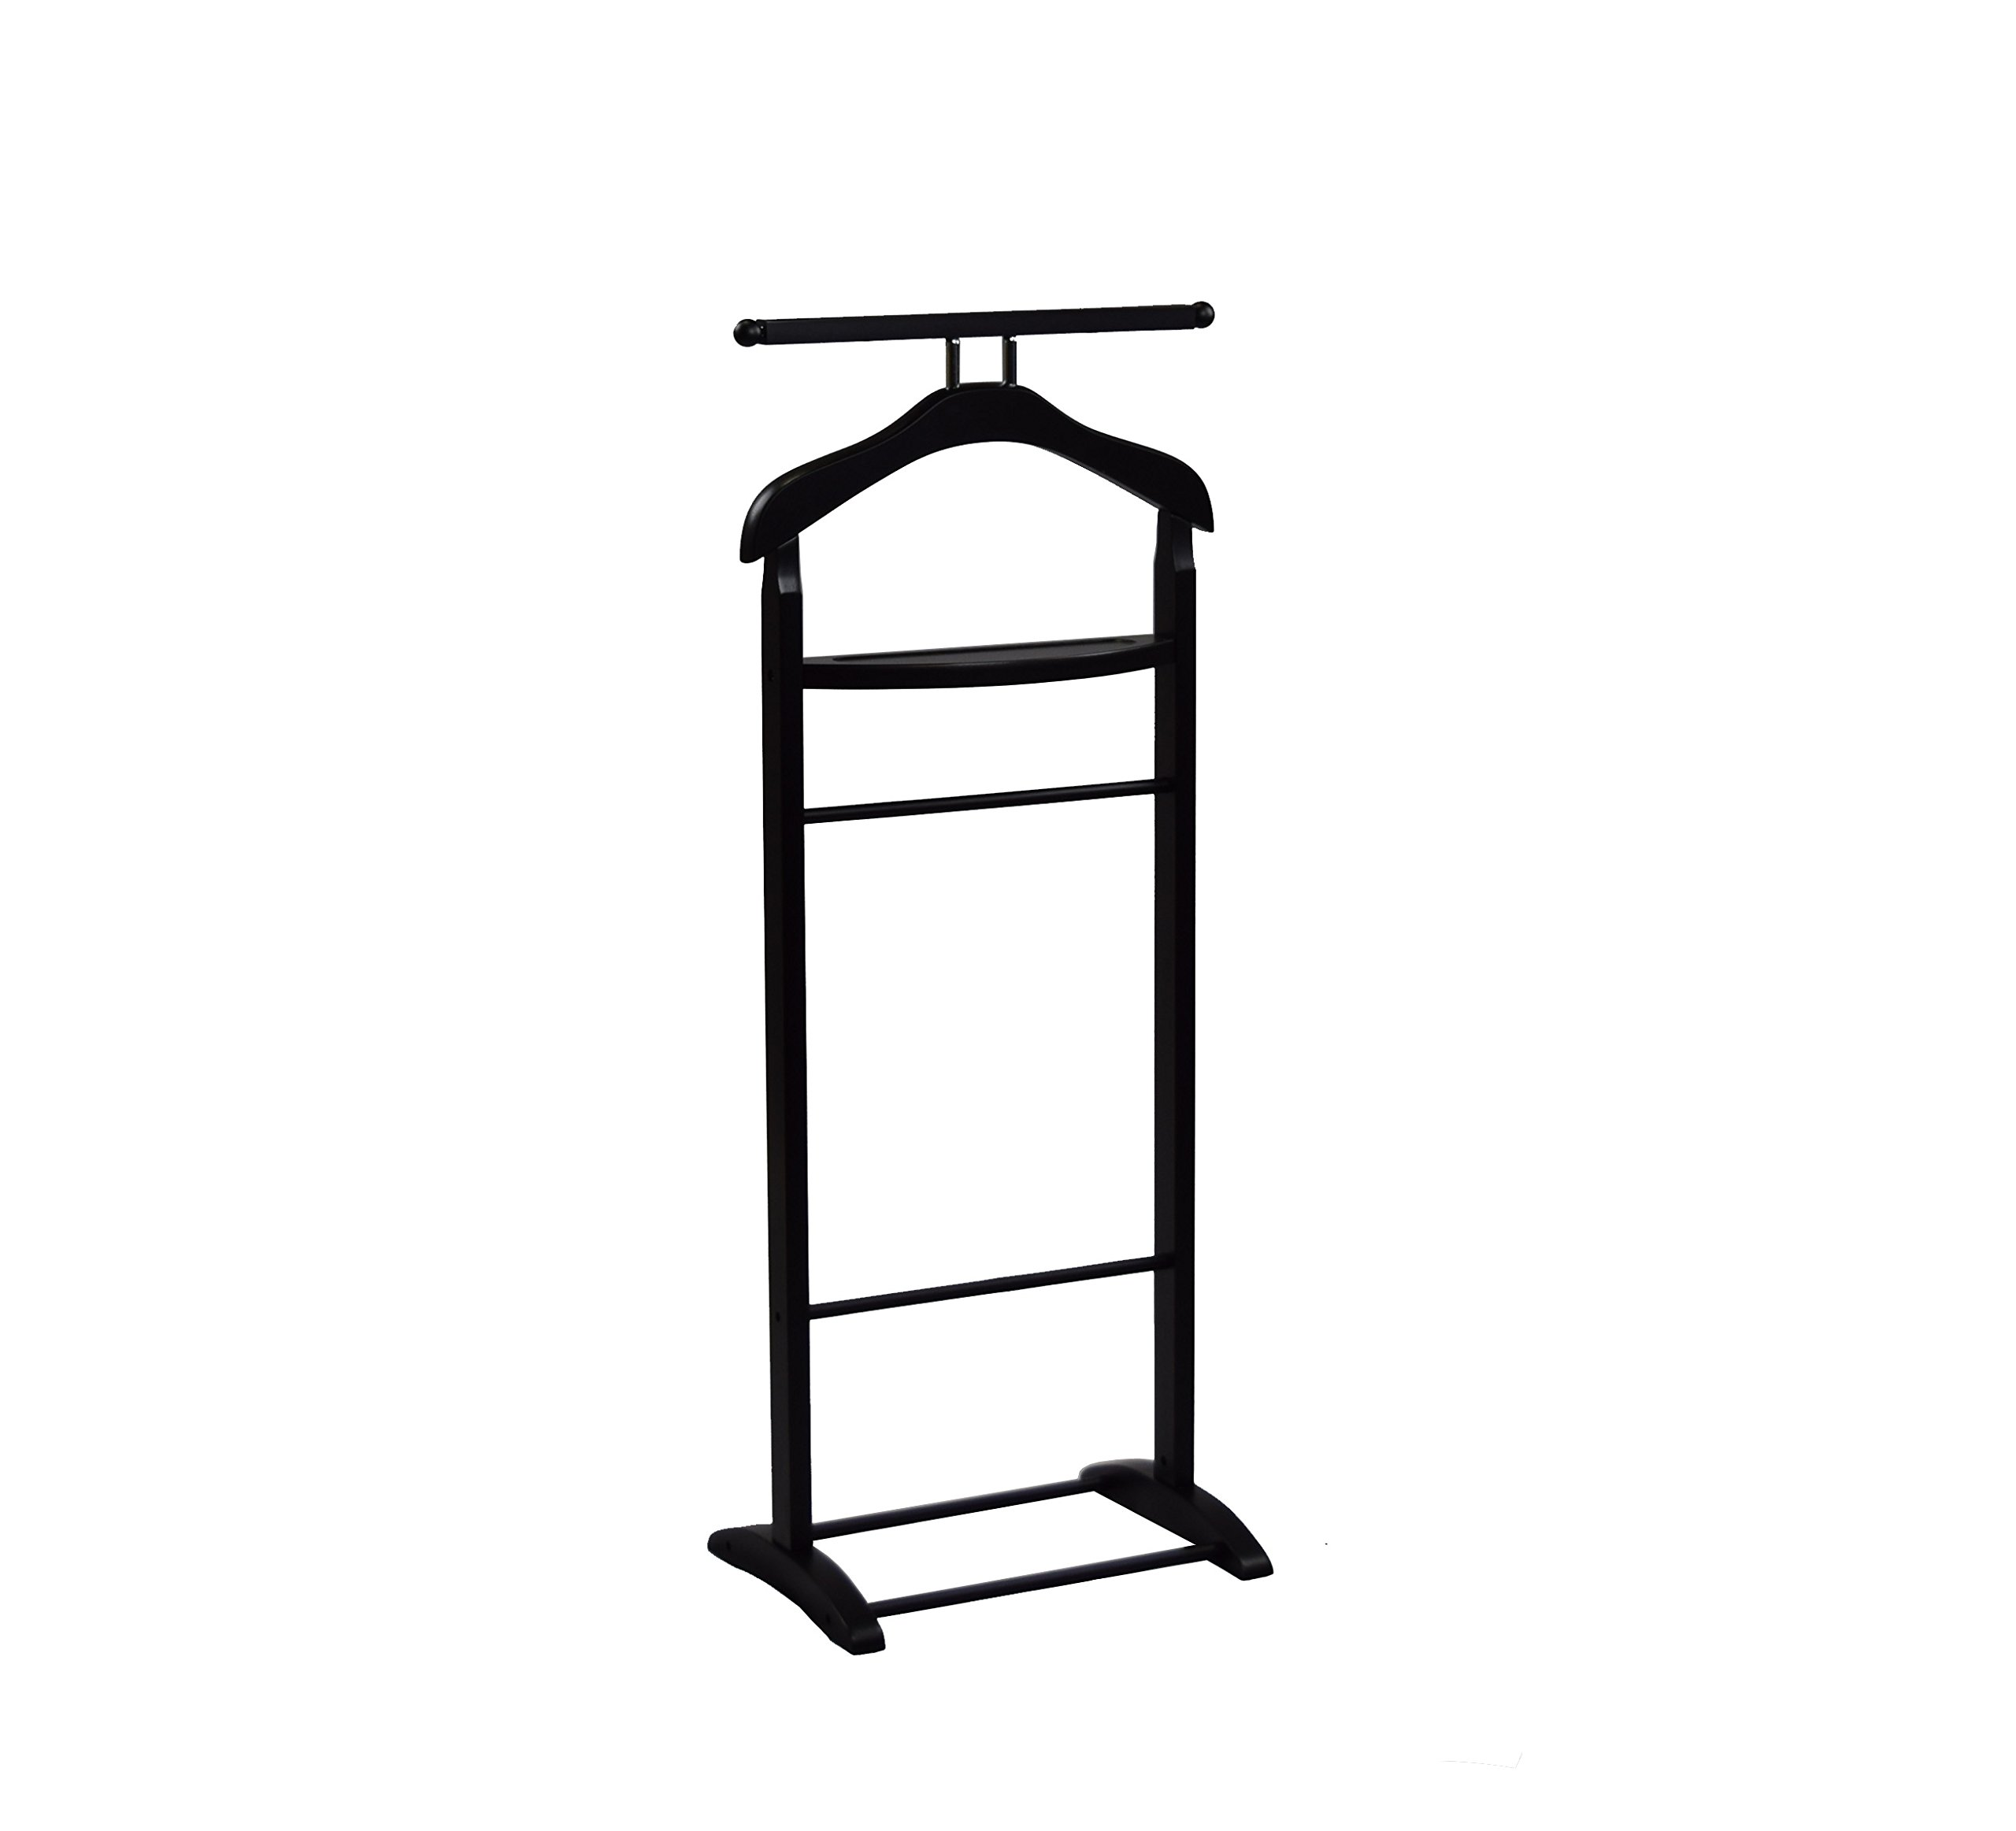 Proman Products VL17016 Knight Valet with Extended Bar and Key Rack, 43.5'', Black